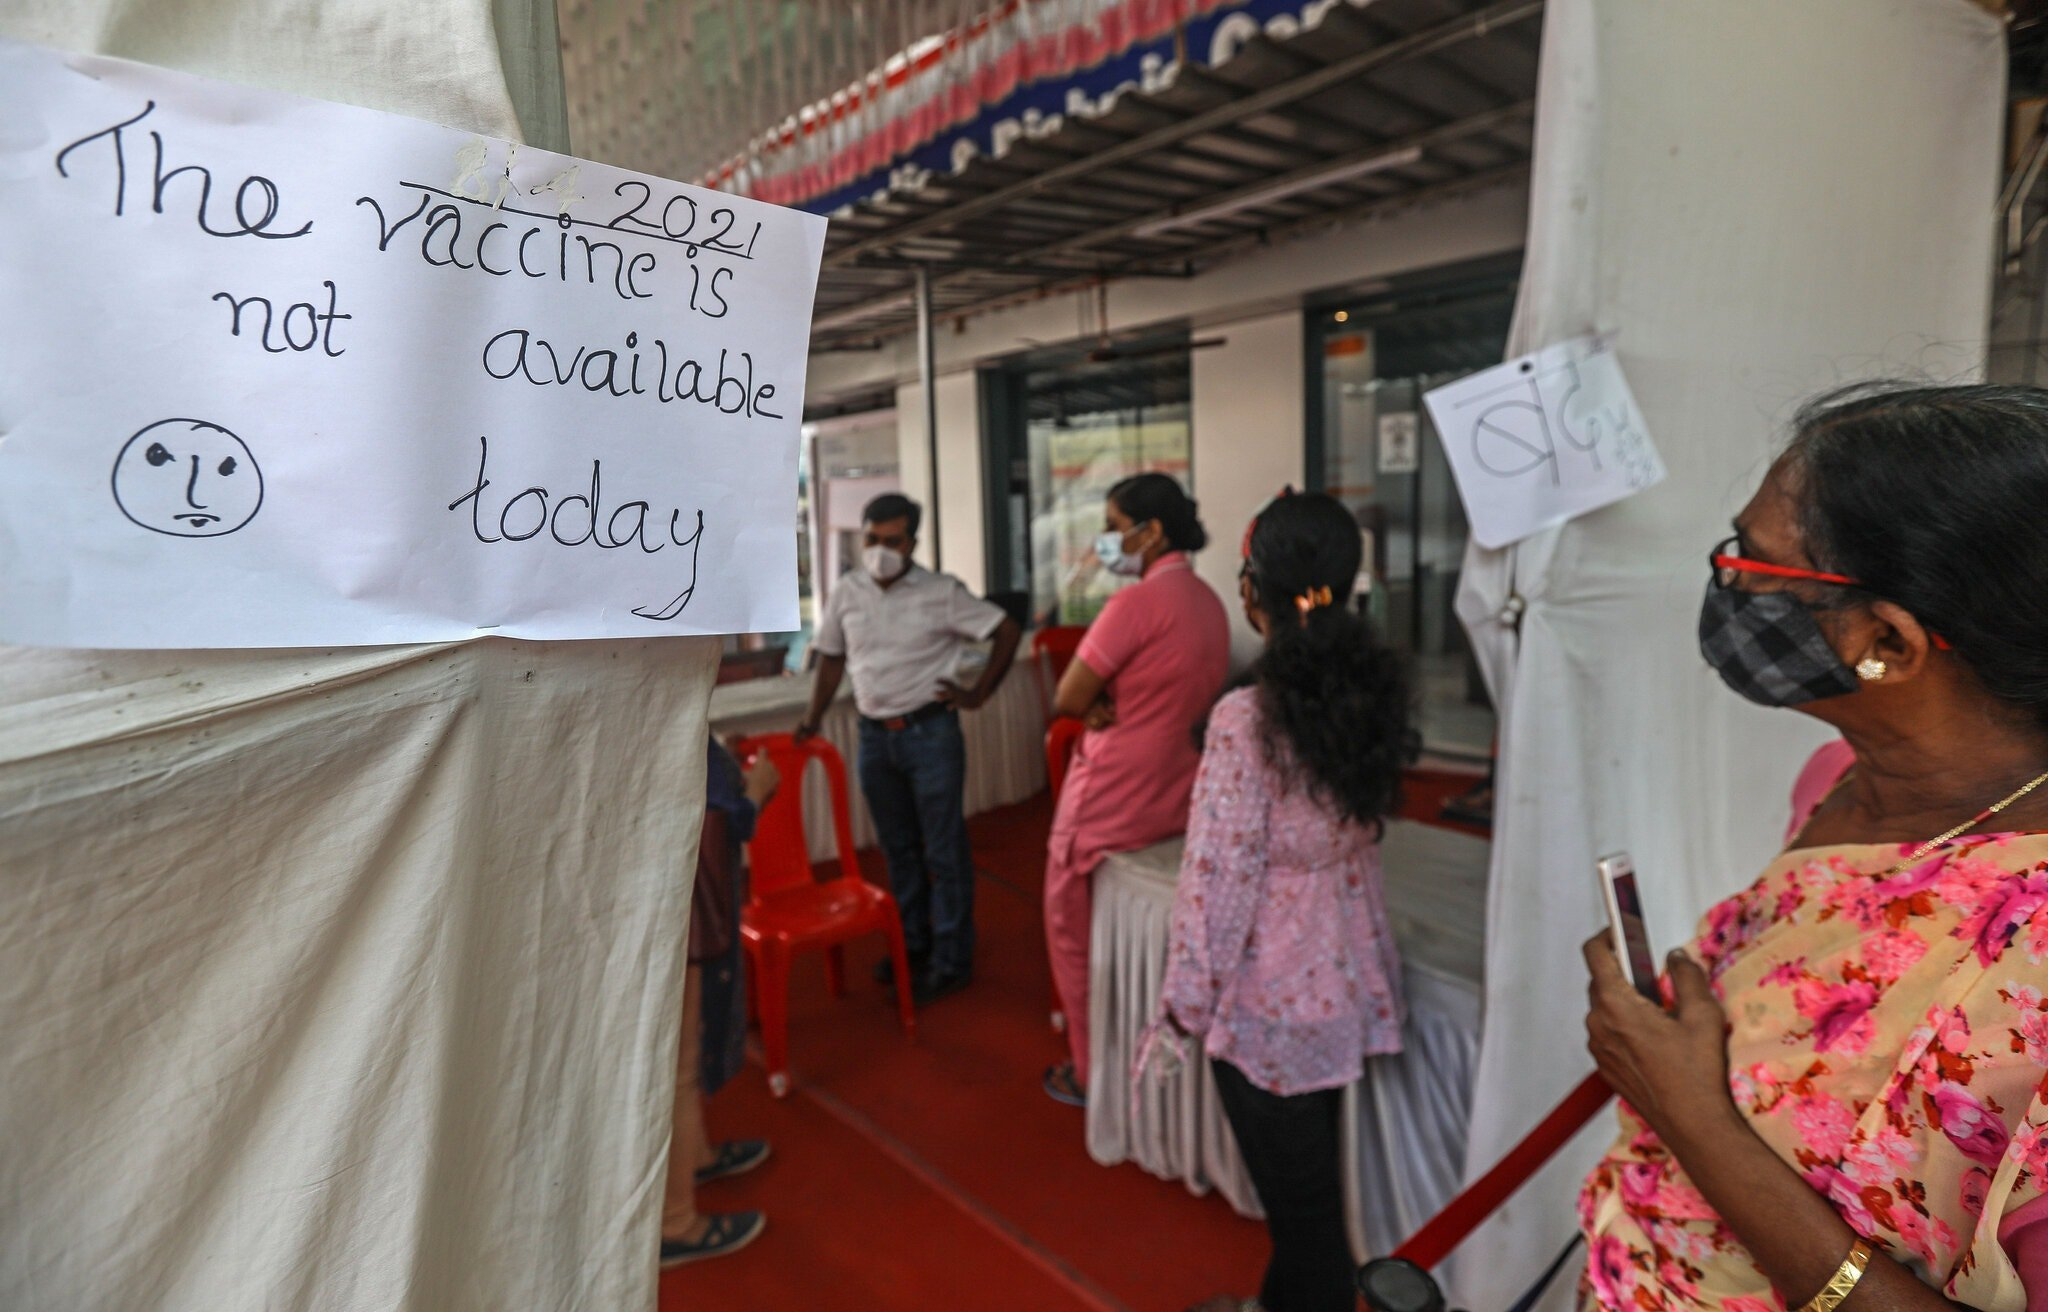 "Centro de vacunación contra COVID-19 en India con un cartel escrito a mano que dice "" Vaccine is not available today""."